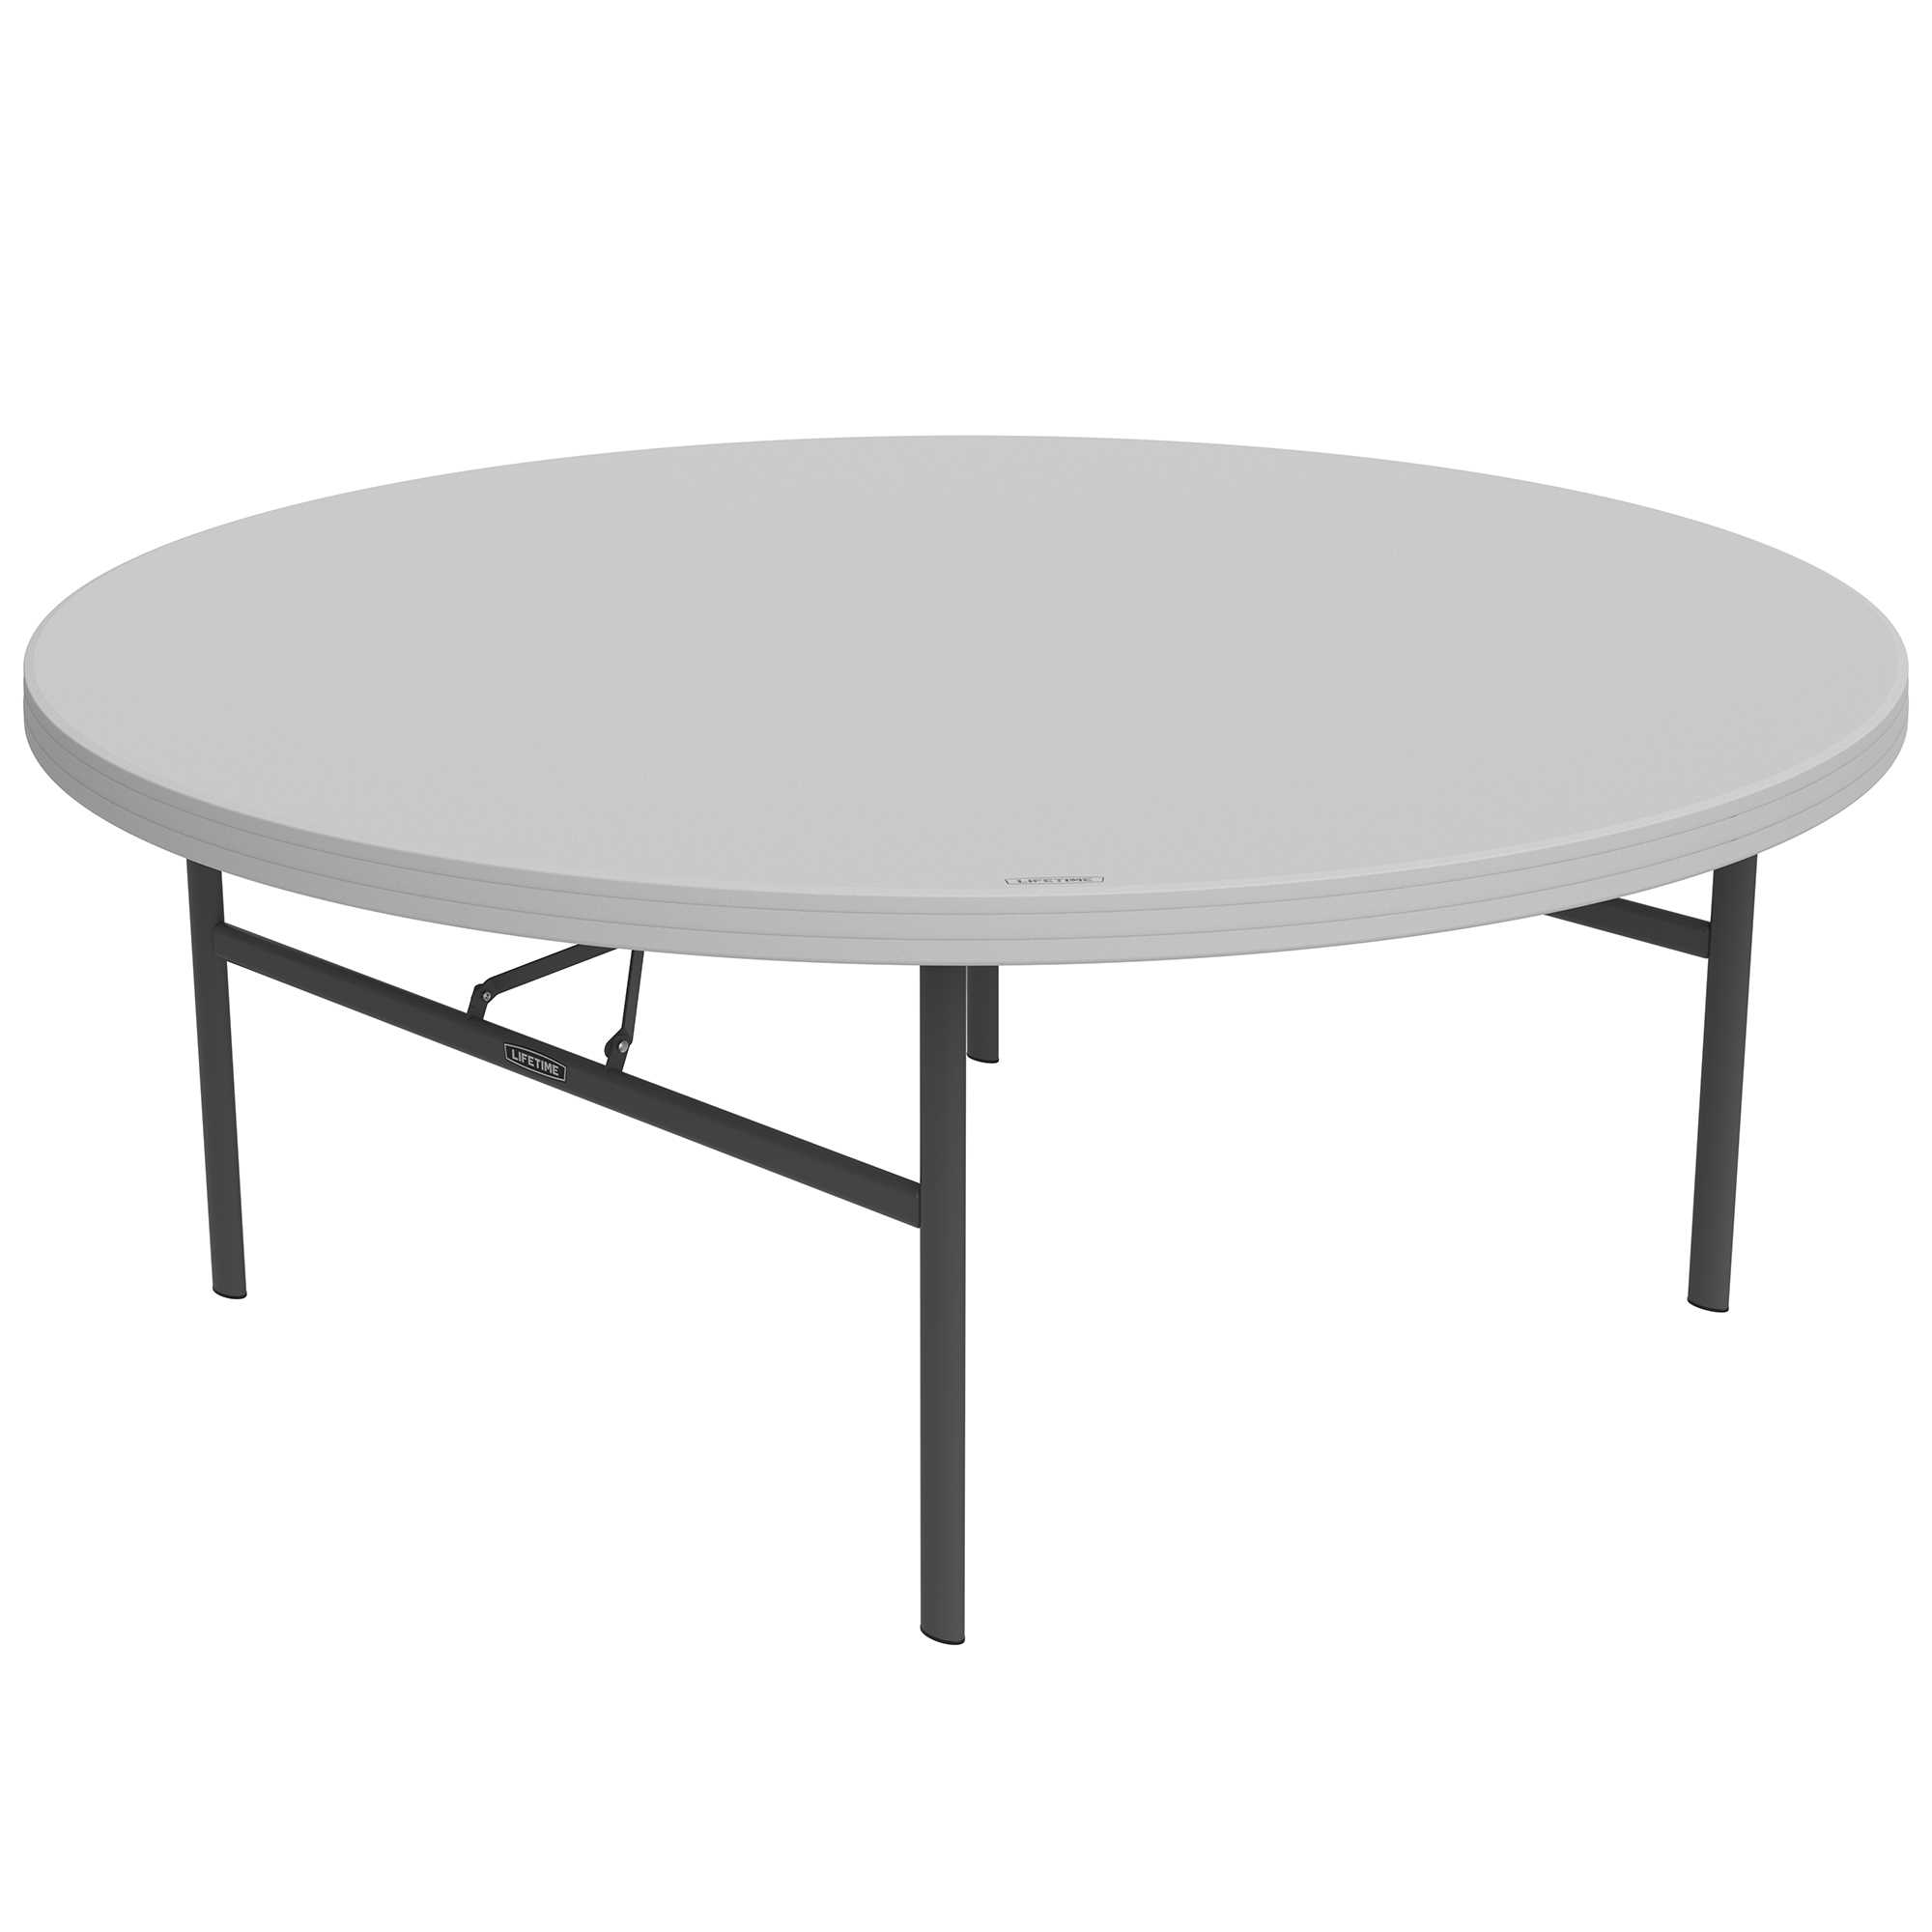 Lifetime 72-Inch Round Table (Commercial)